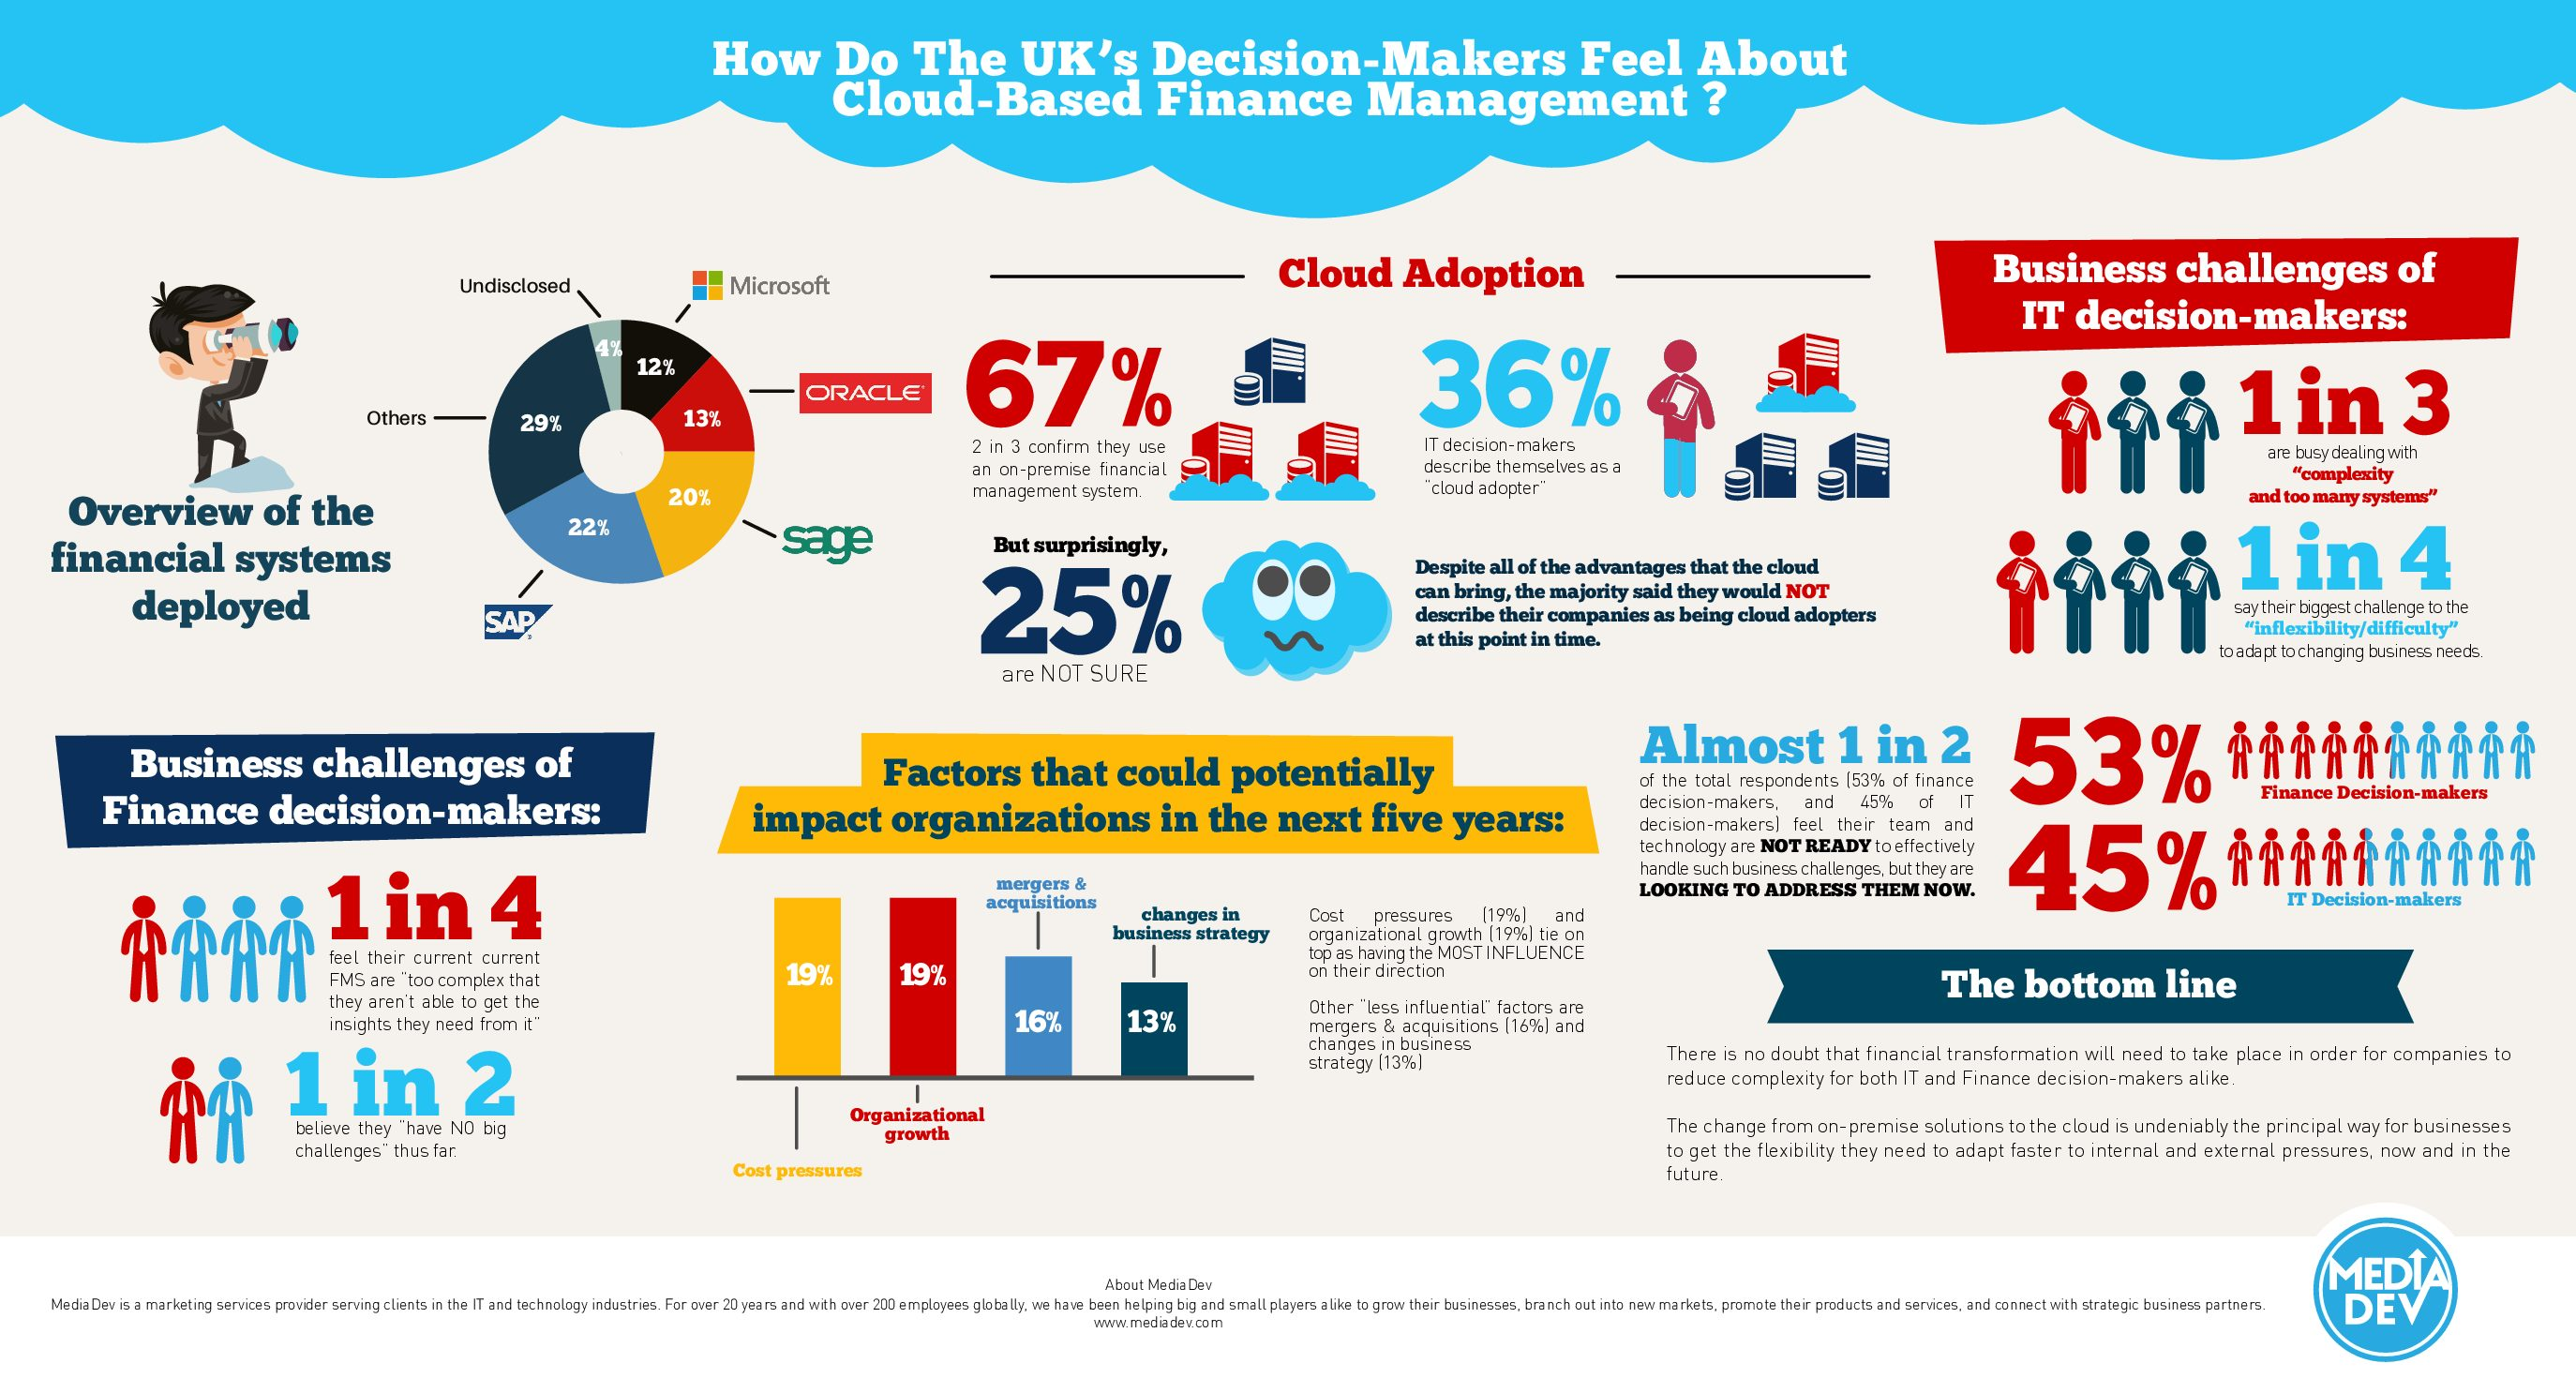 How UK Decision-Makers Feel About Cloud-Based Finance Management